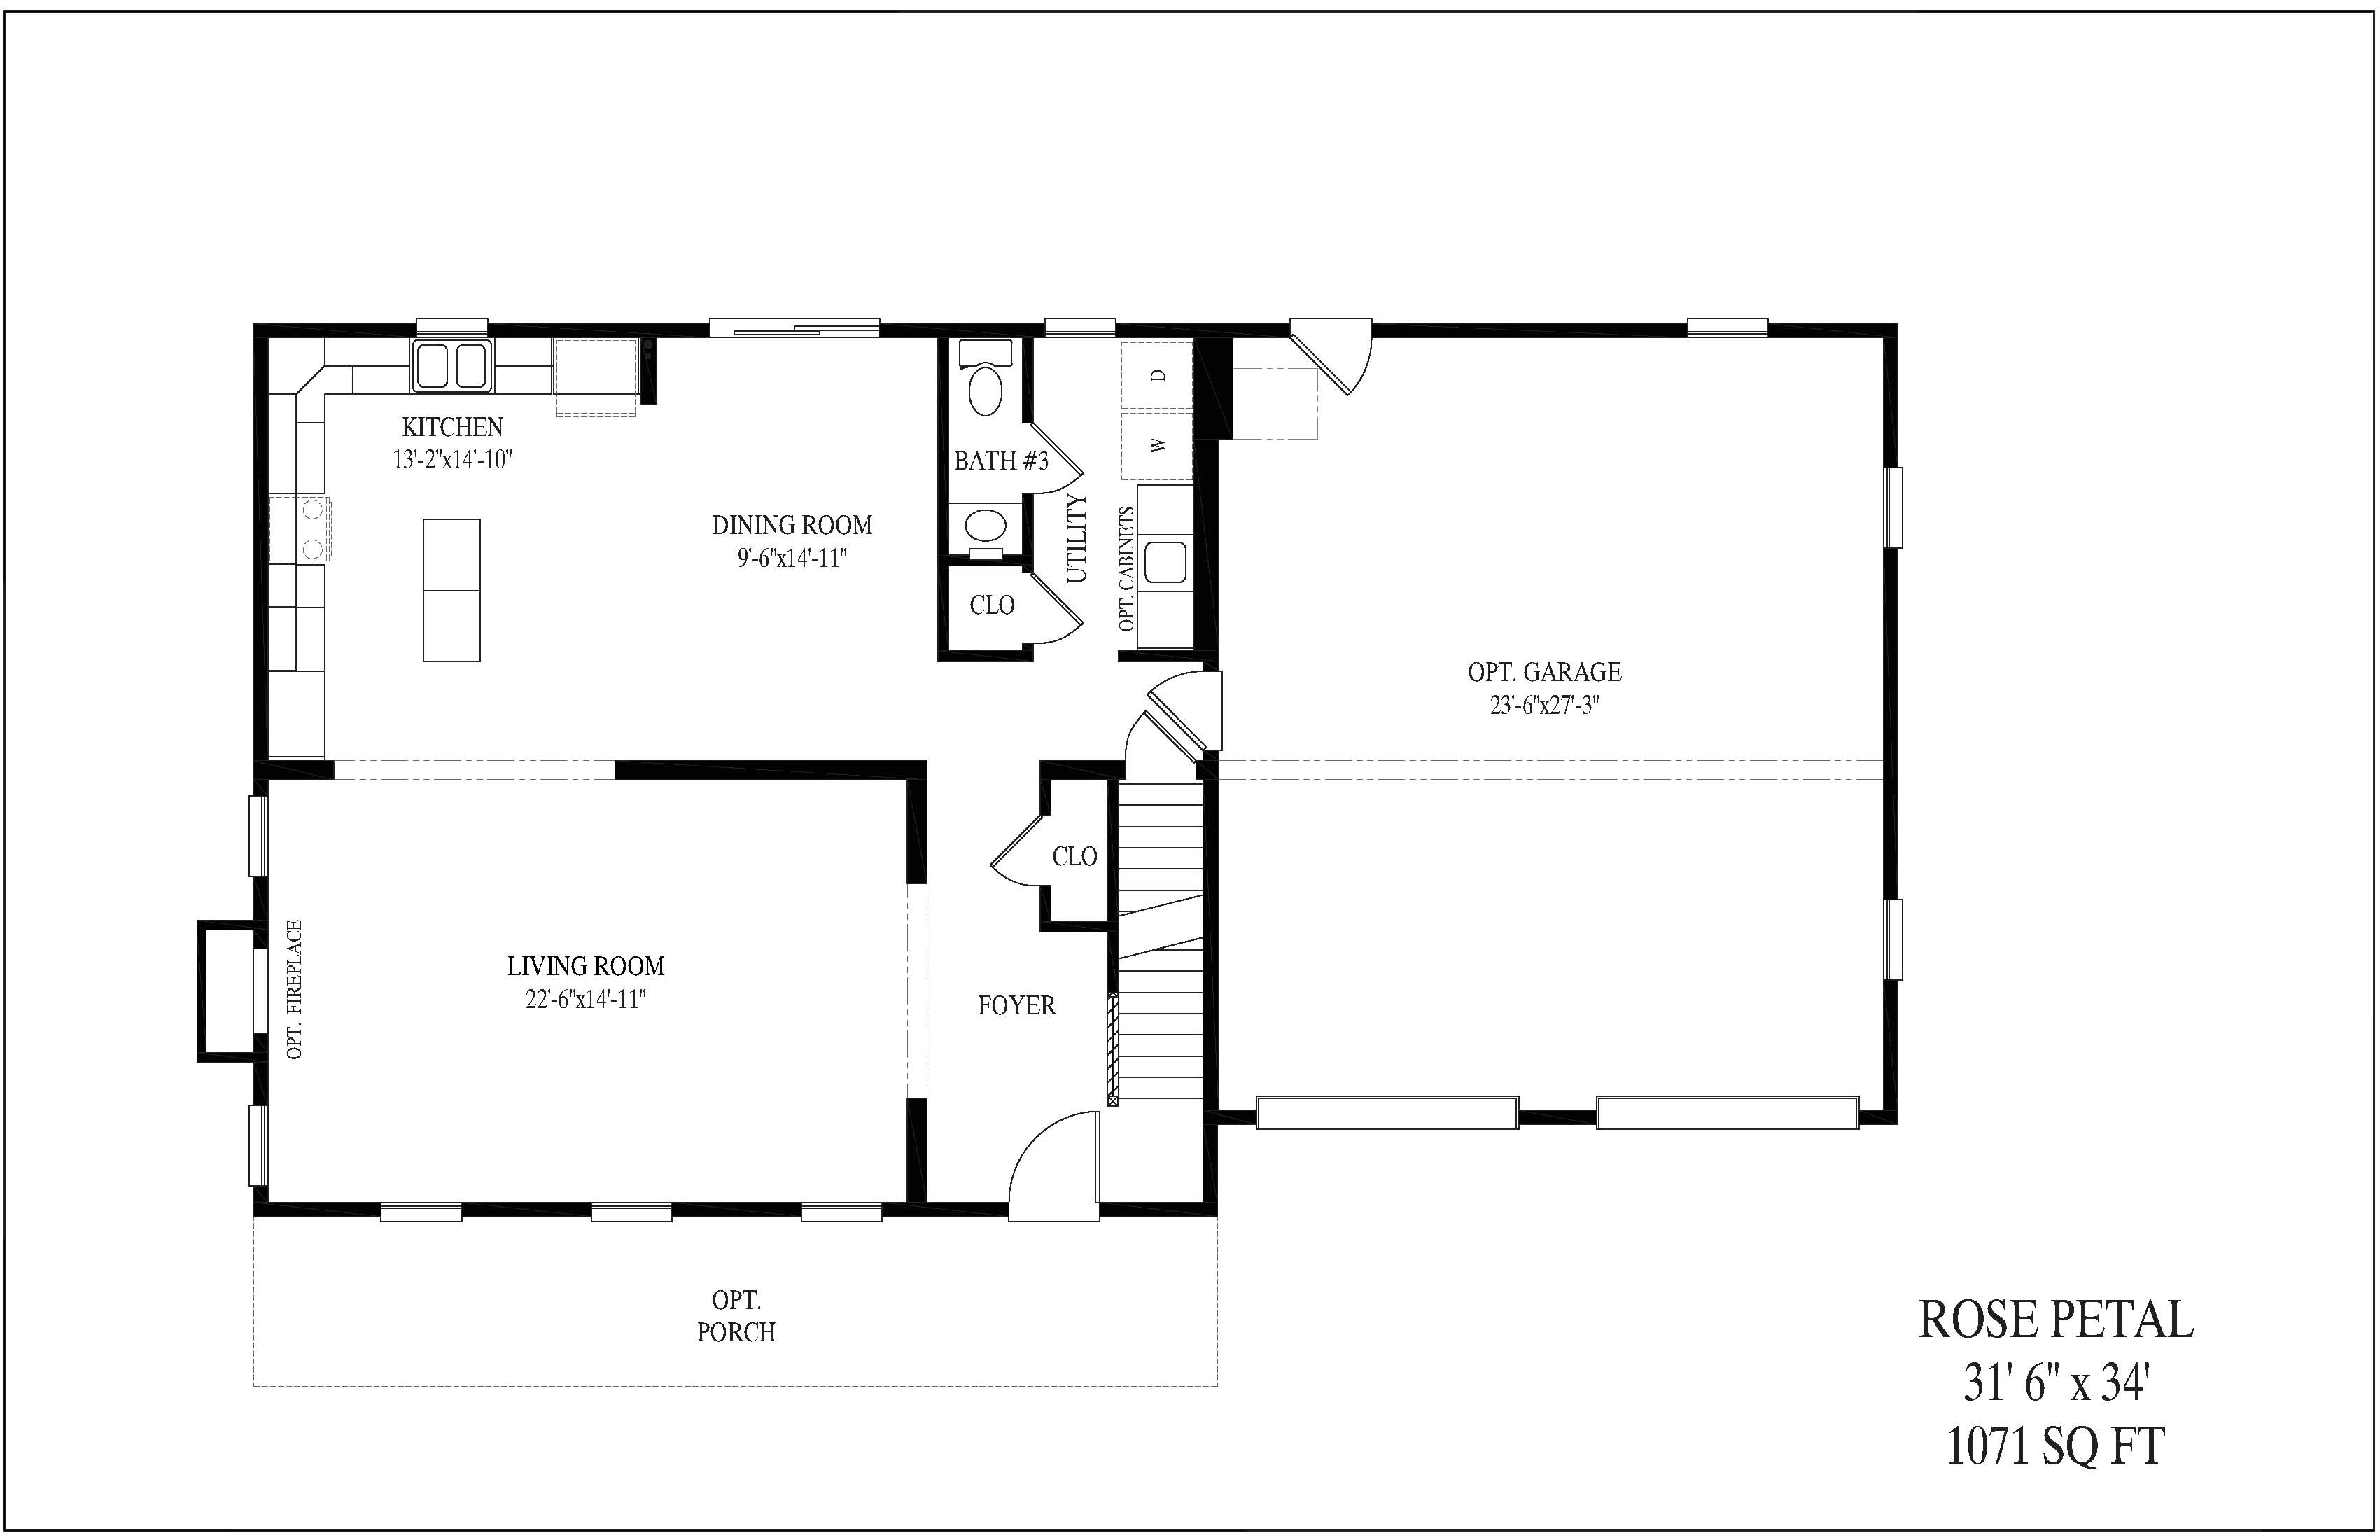 this http://custombuildingsystems.net/wp-content/uploads/2018/06/Rose-Petal-floor-plan_Page_1.jpg